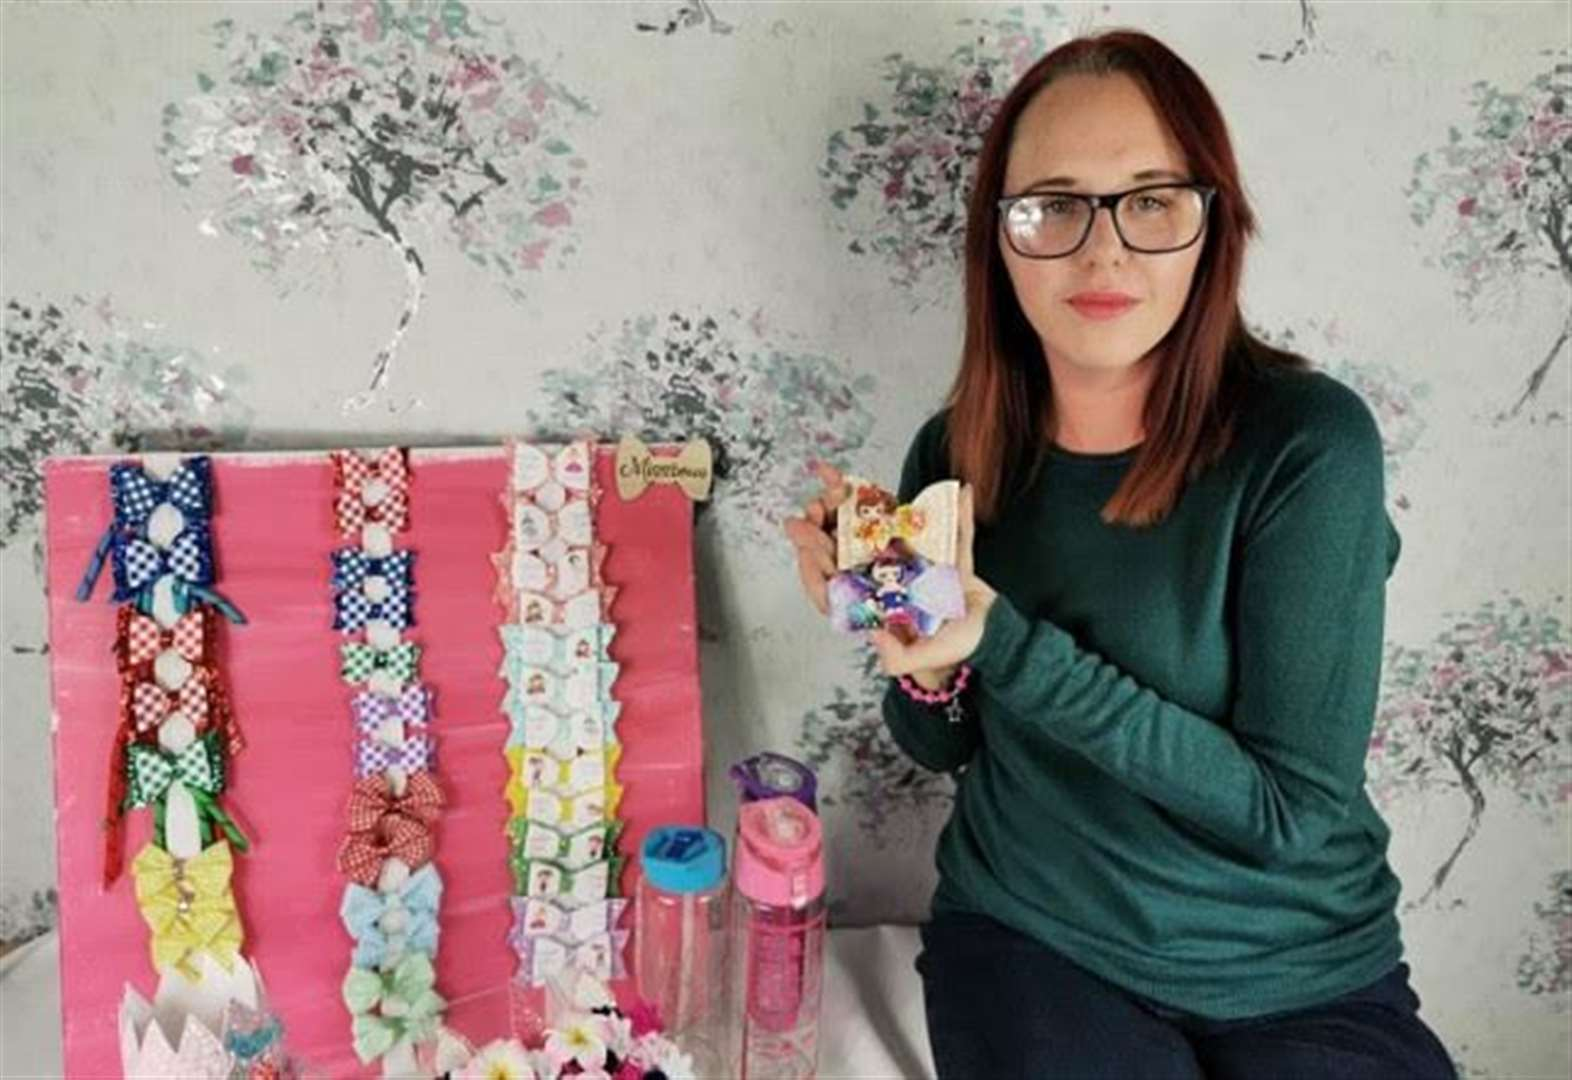 Fairstead mum-of-two sets up new business creating unique accessories for children